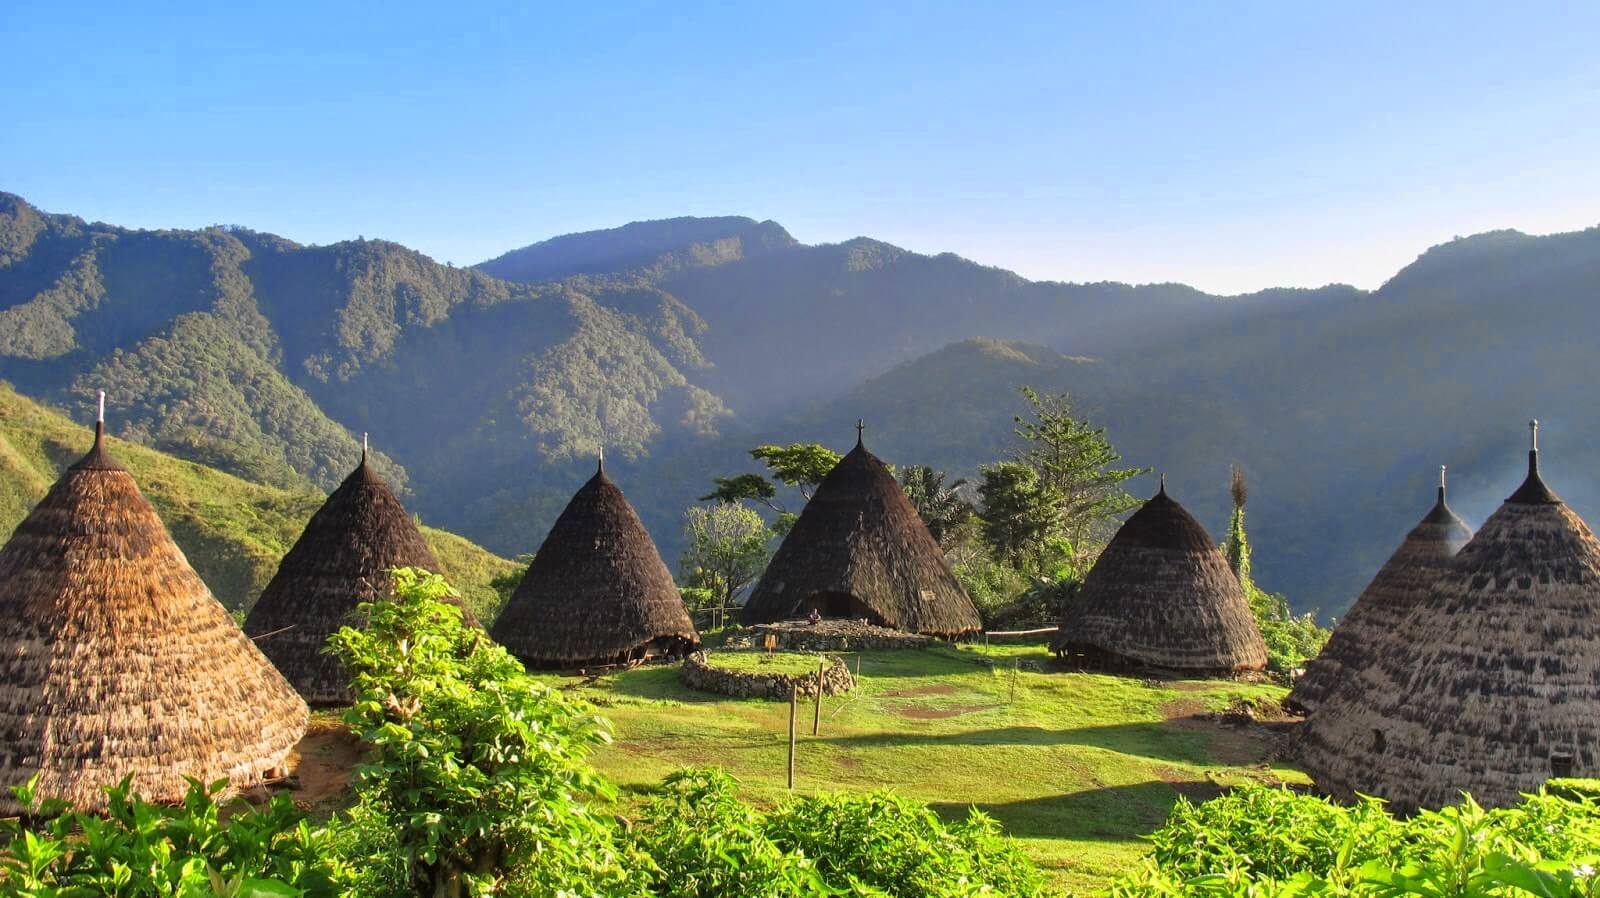 The cone houses at Wae Rebo village